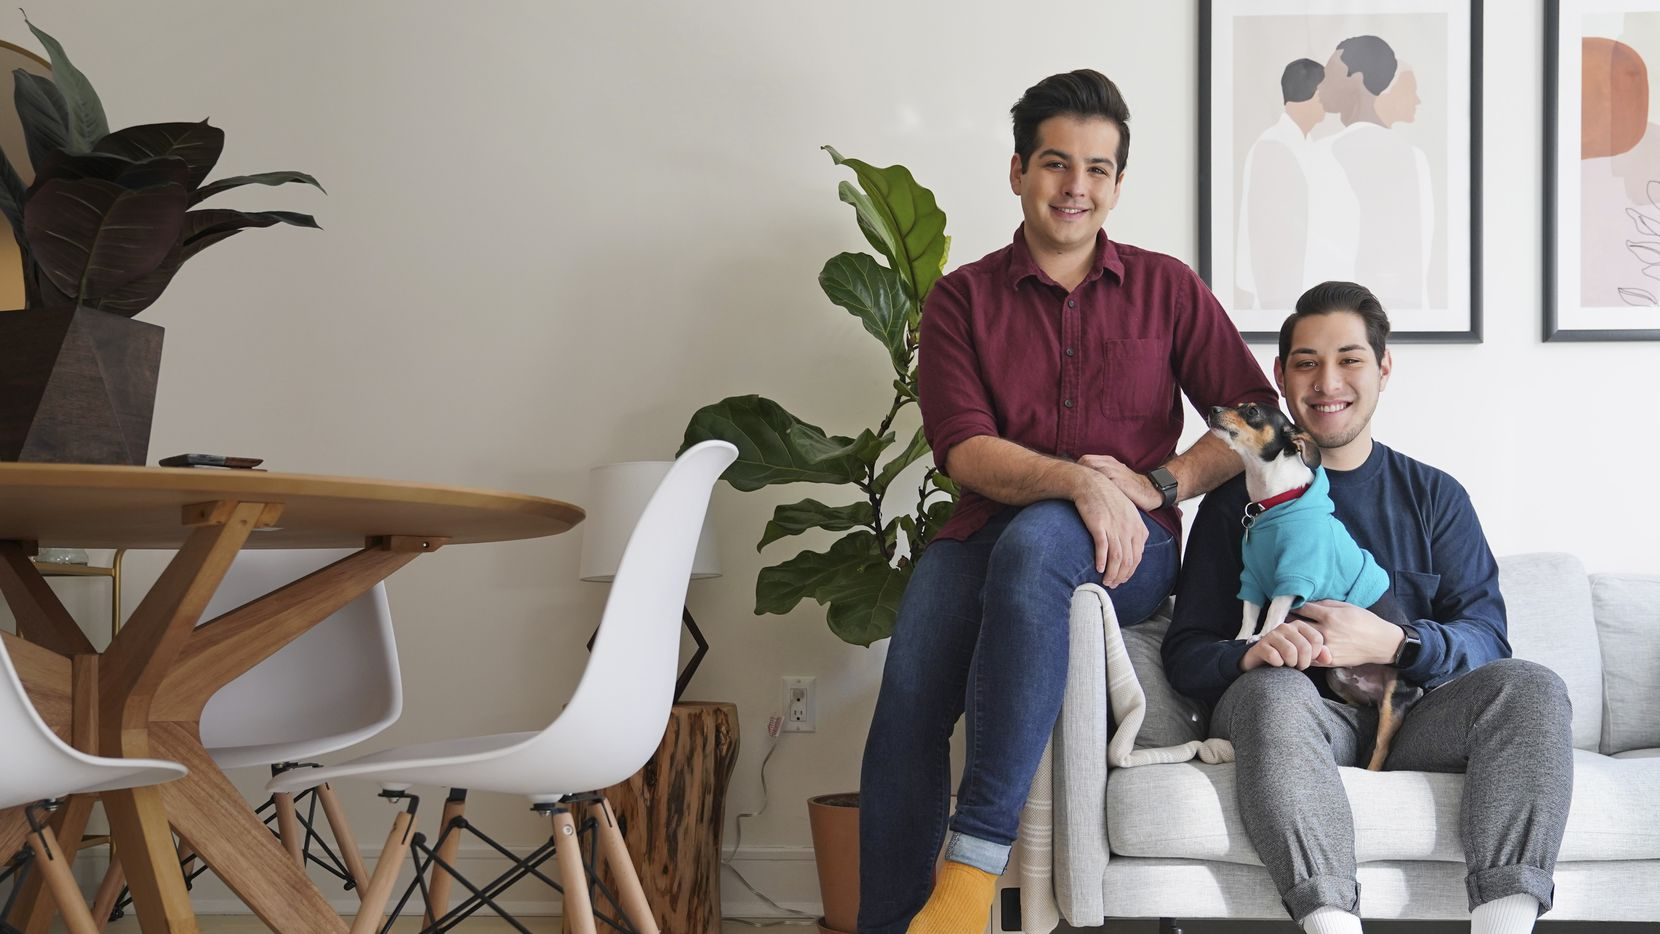 Zachariah Mohammed (left), Pete Mancilla and their dog Remy pose for a picture in their apartment in New York. Most of the furniture in their apartment, including the couch, the table and chairs, the side table and the bar cart, are rented. (AP Photo/Seth Wenig)